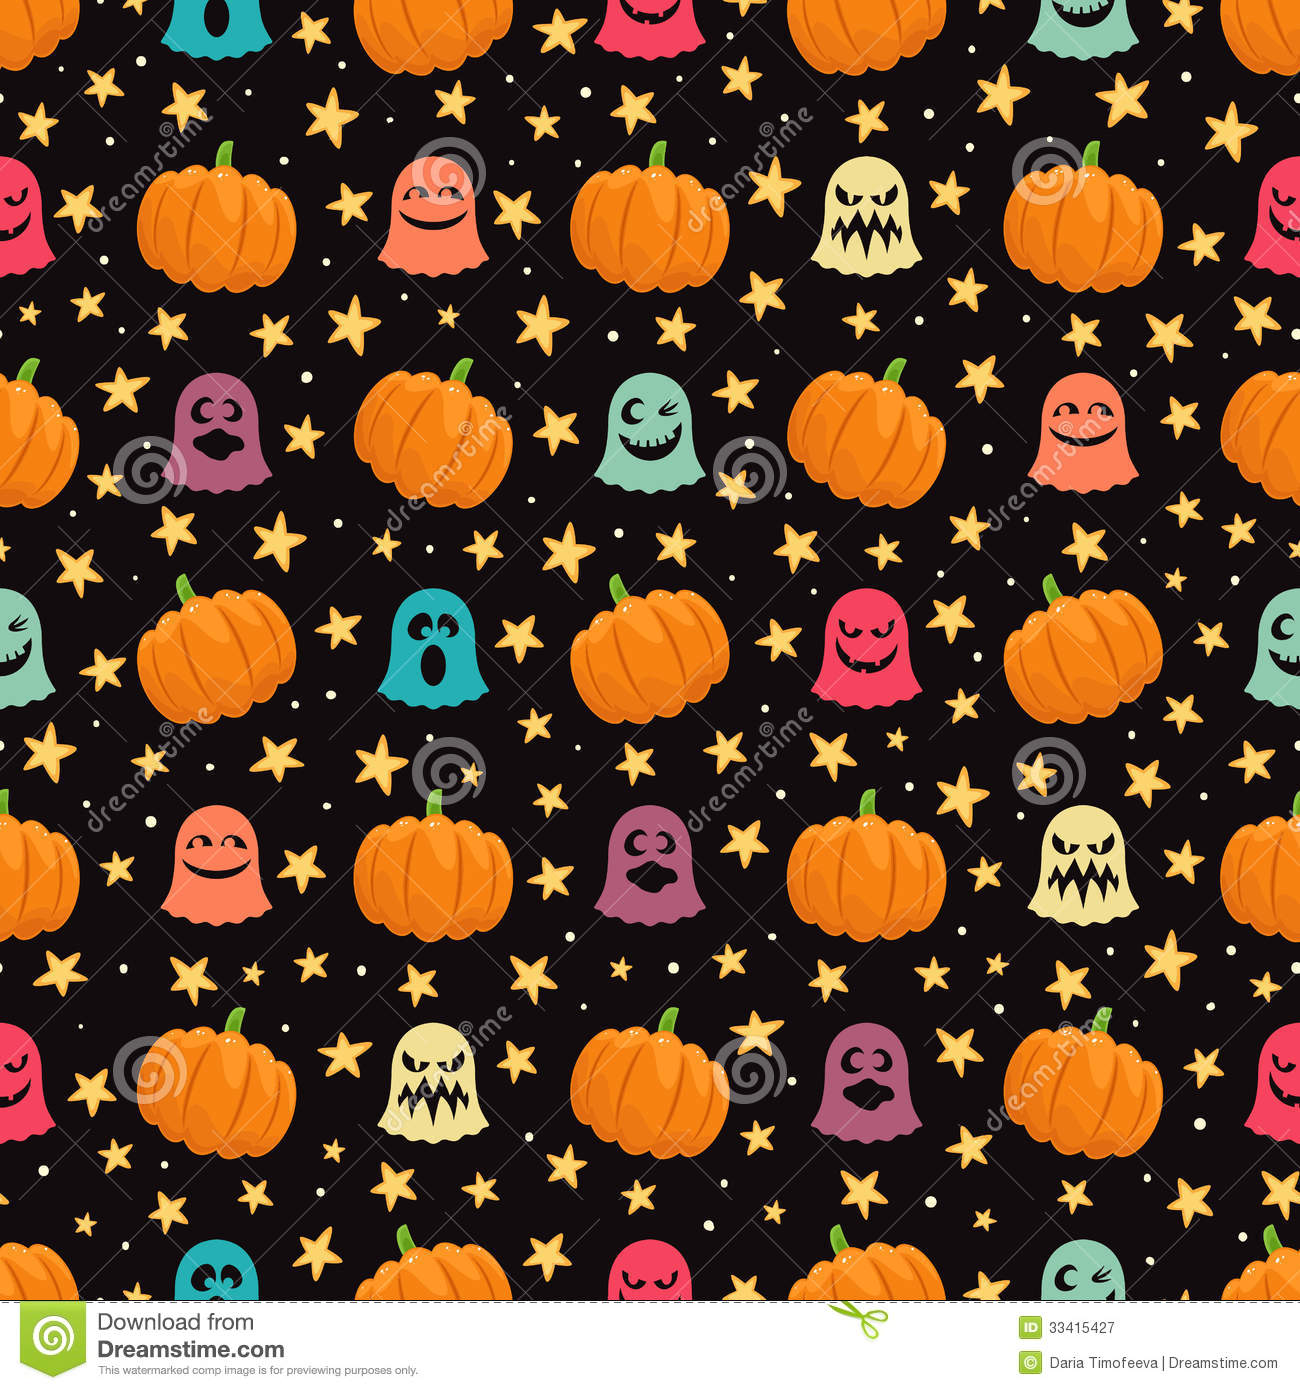 Pumpkins and ghosts stock vector. Image of abstract, illustration ...